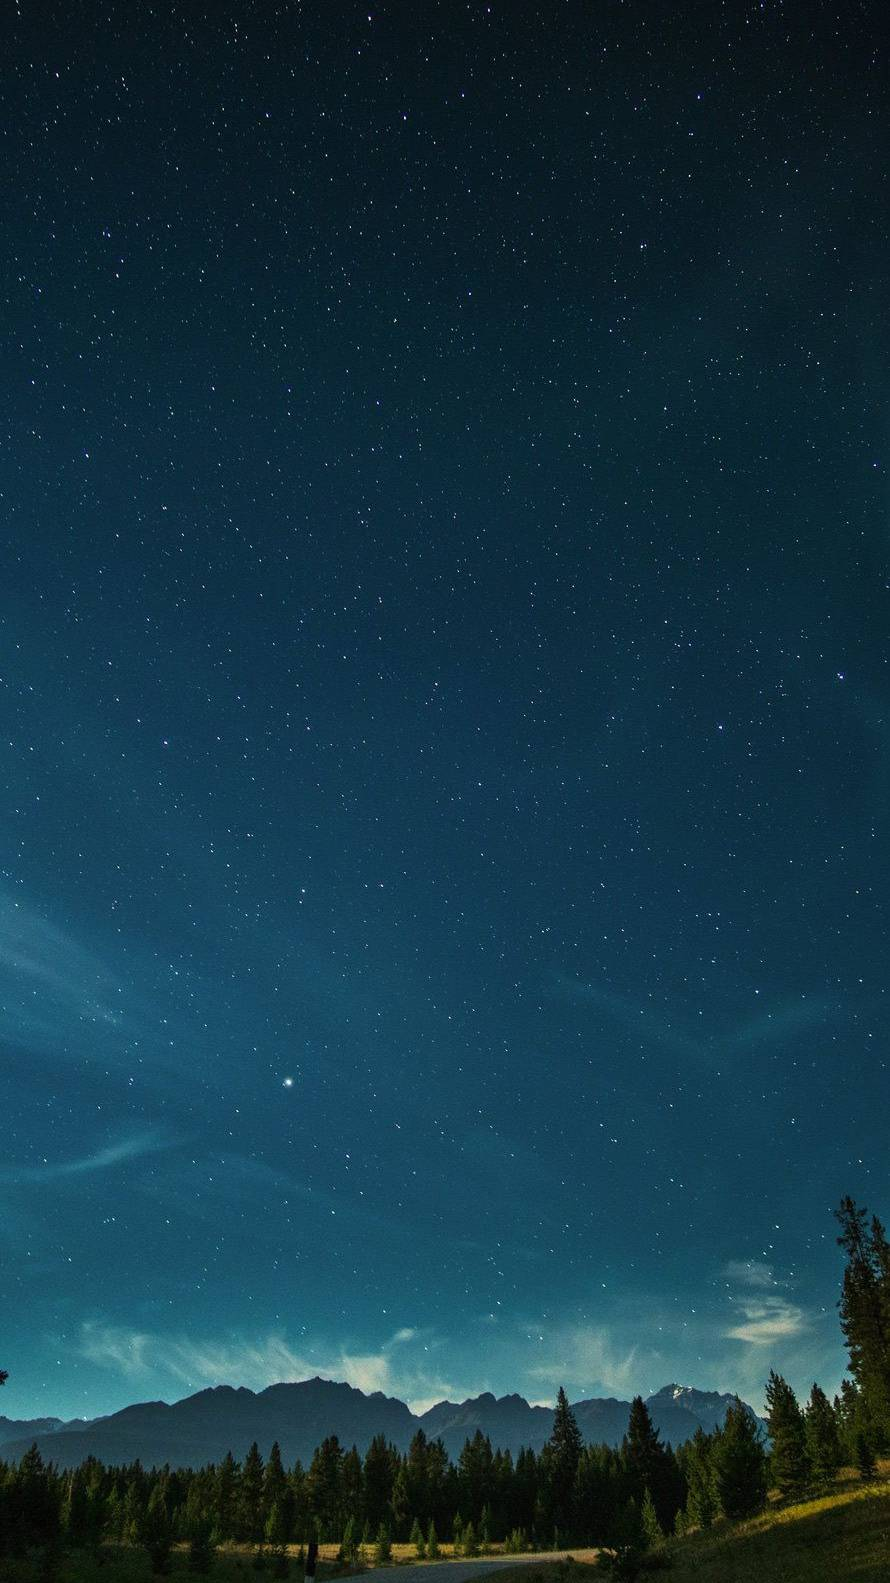 Nature Sky View Stars iPhone Wallpaper